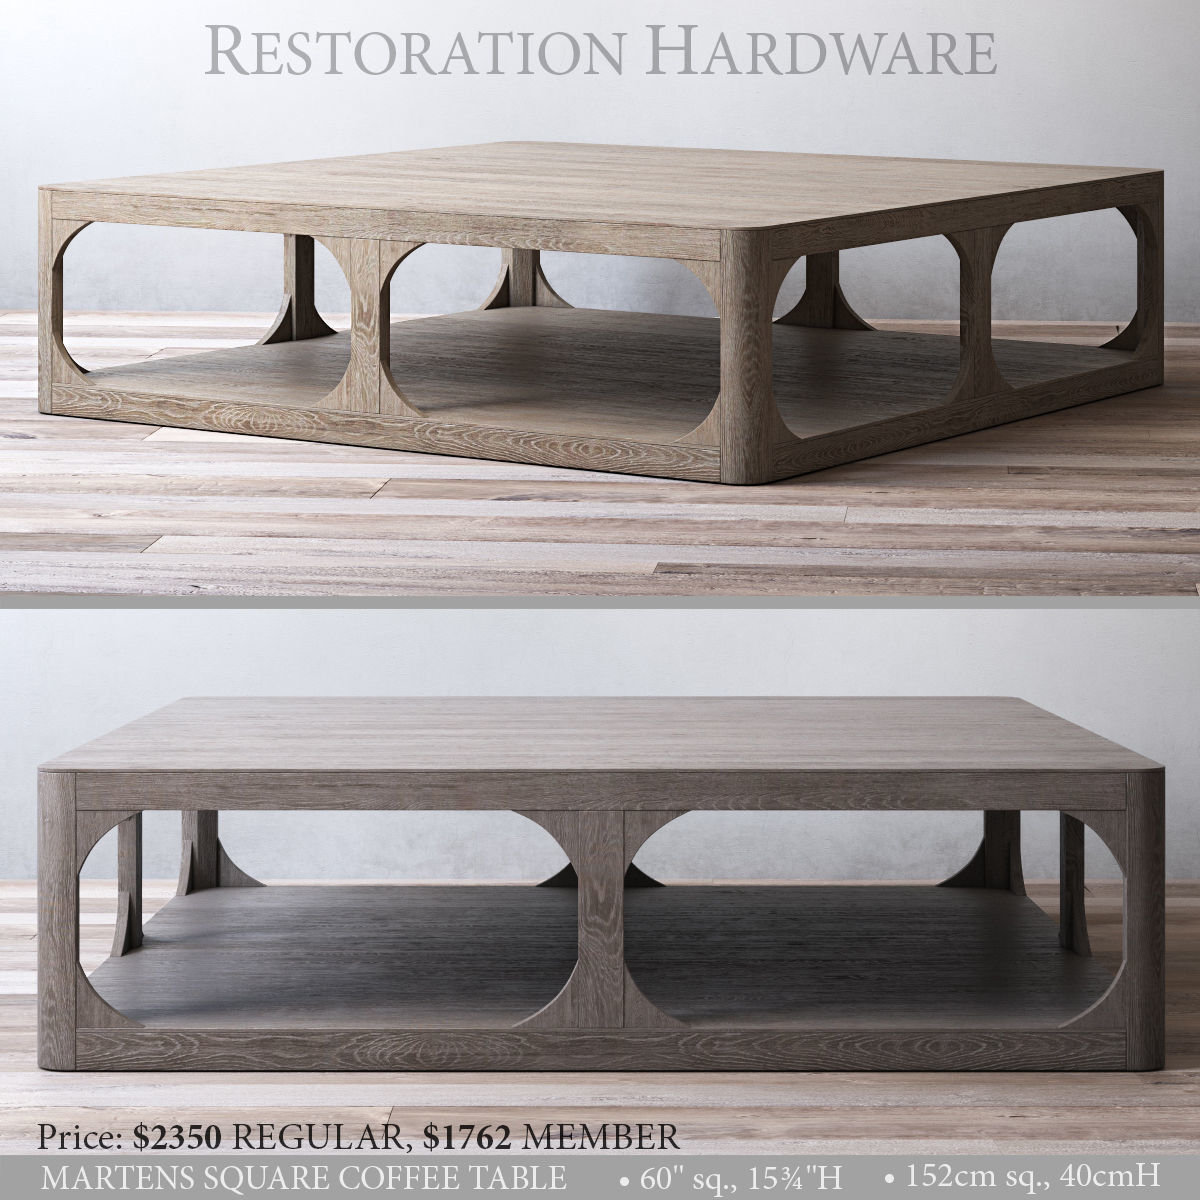 - RH MARTENS SQUARE COFFEE TABLE 3D CGTrader